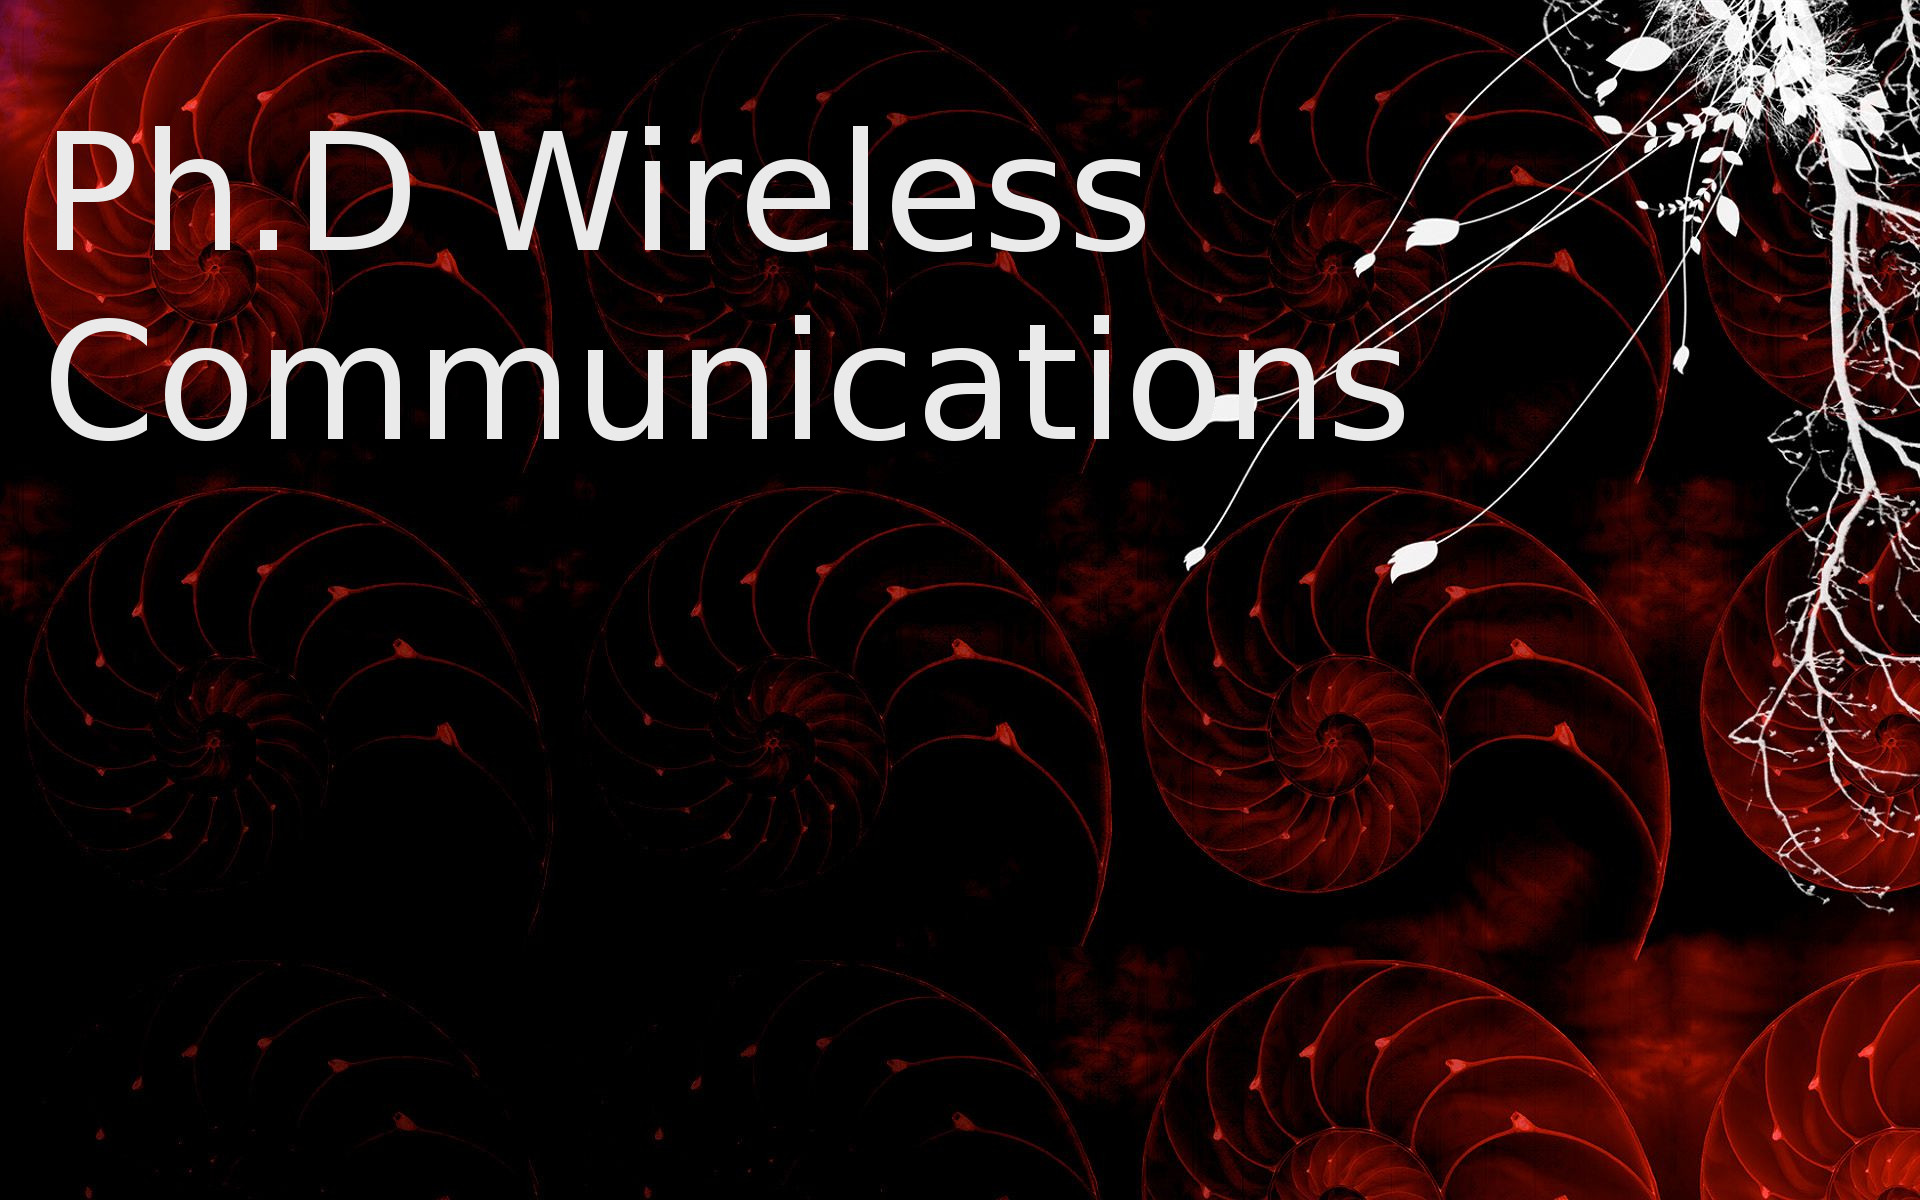 Doctor of Philosophy (PhD Wireless Communications)